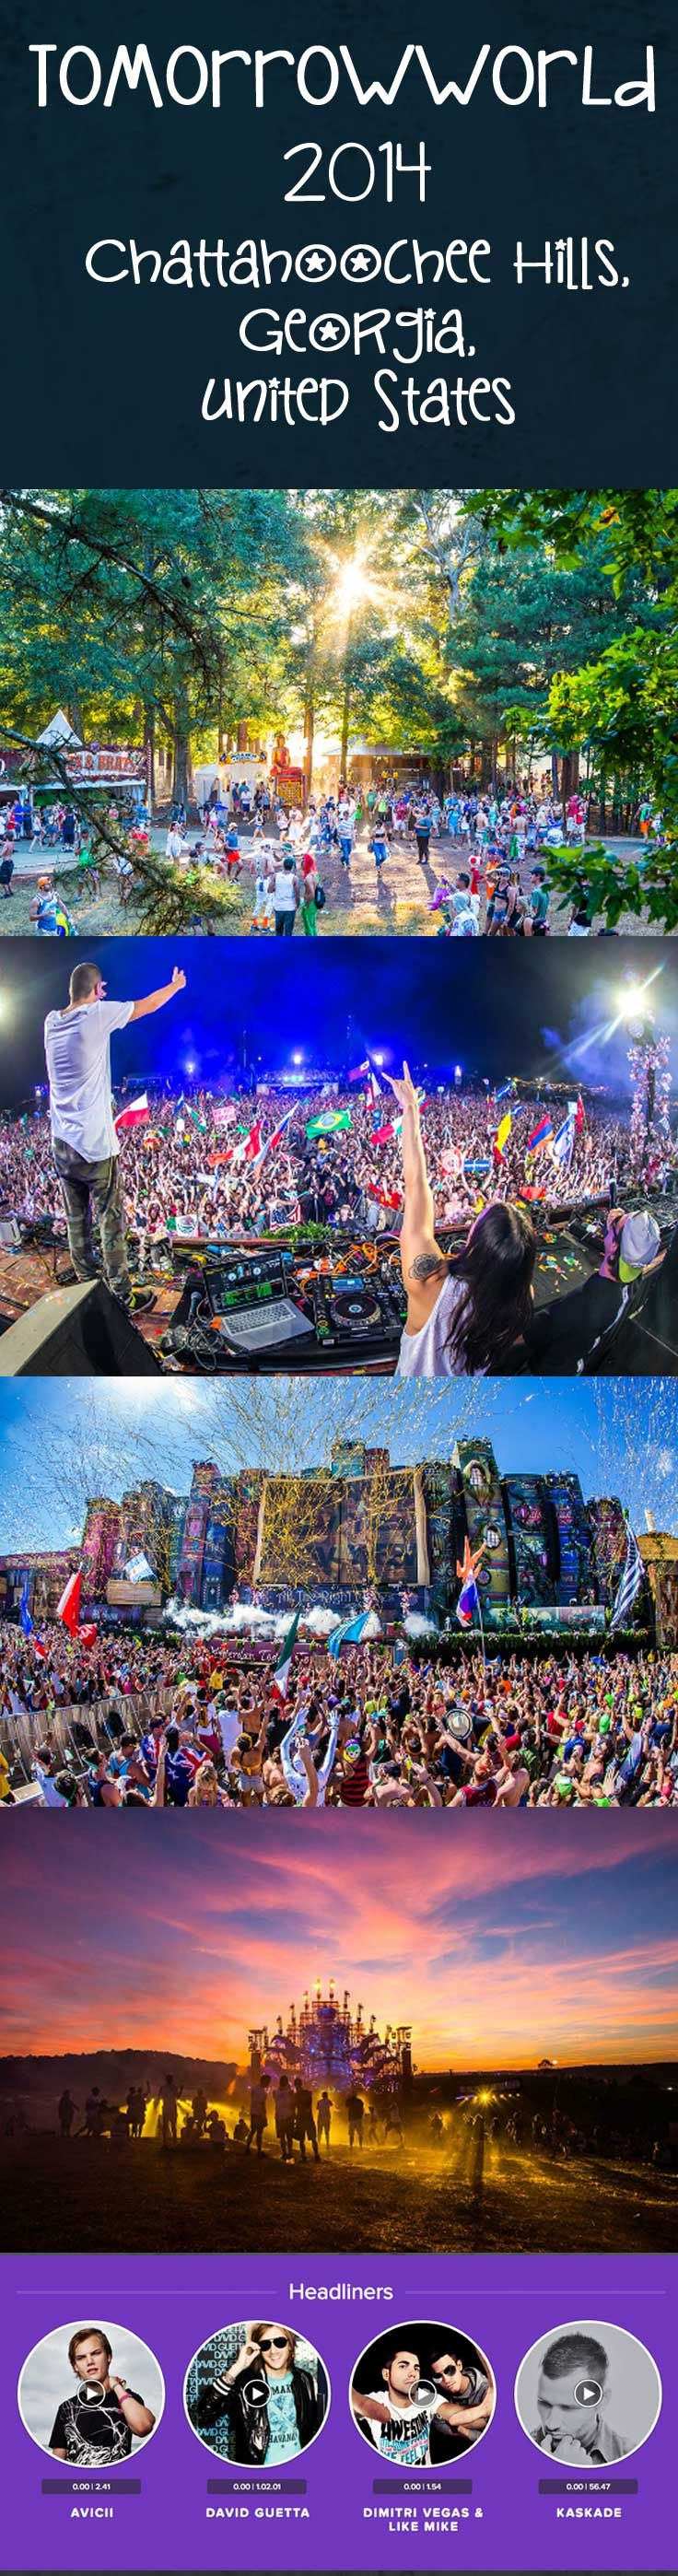 TomorrowWorld 2014 - Across eight stages, electronic-lovers will find everything from trance and techno to minimal and the more experimental, plus everything in between. #highlife #420 #lifeistravel